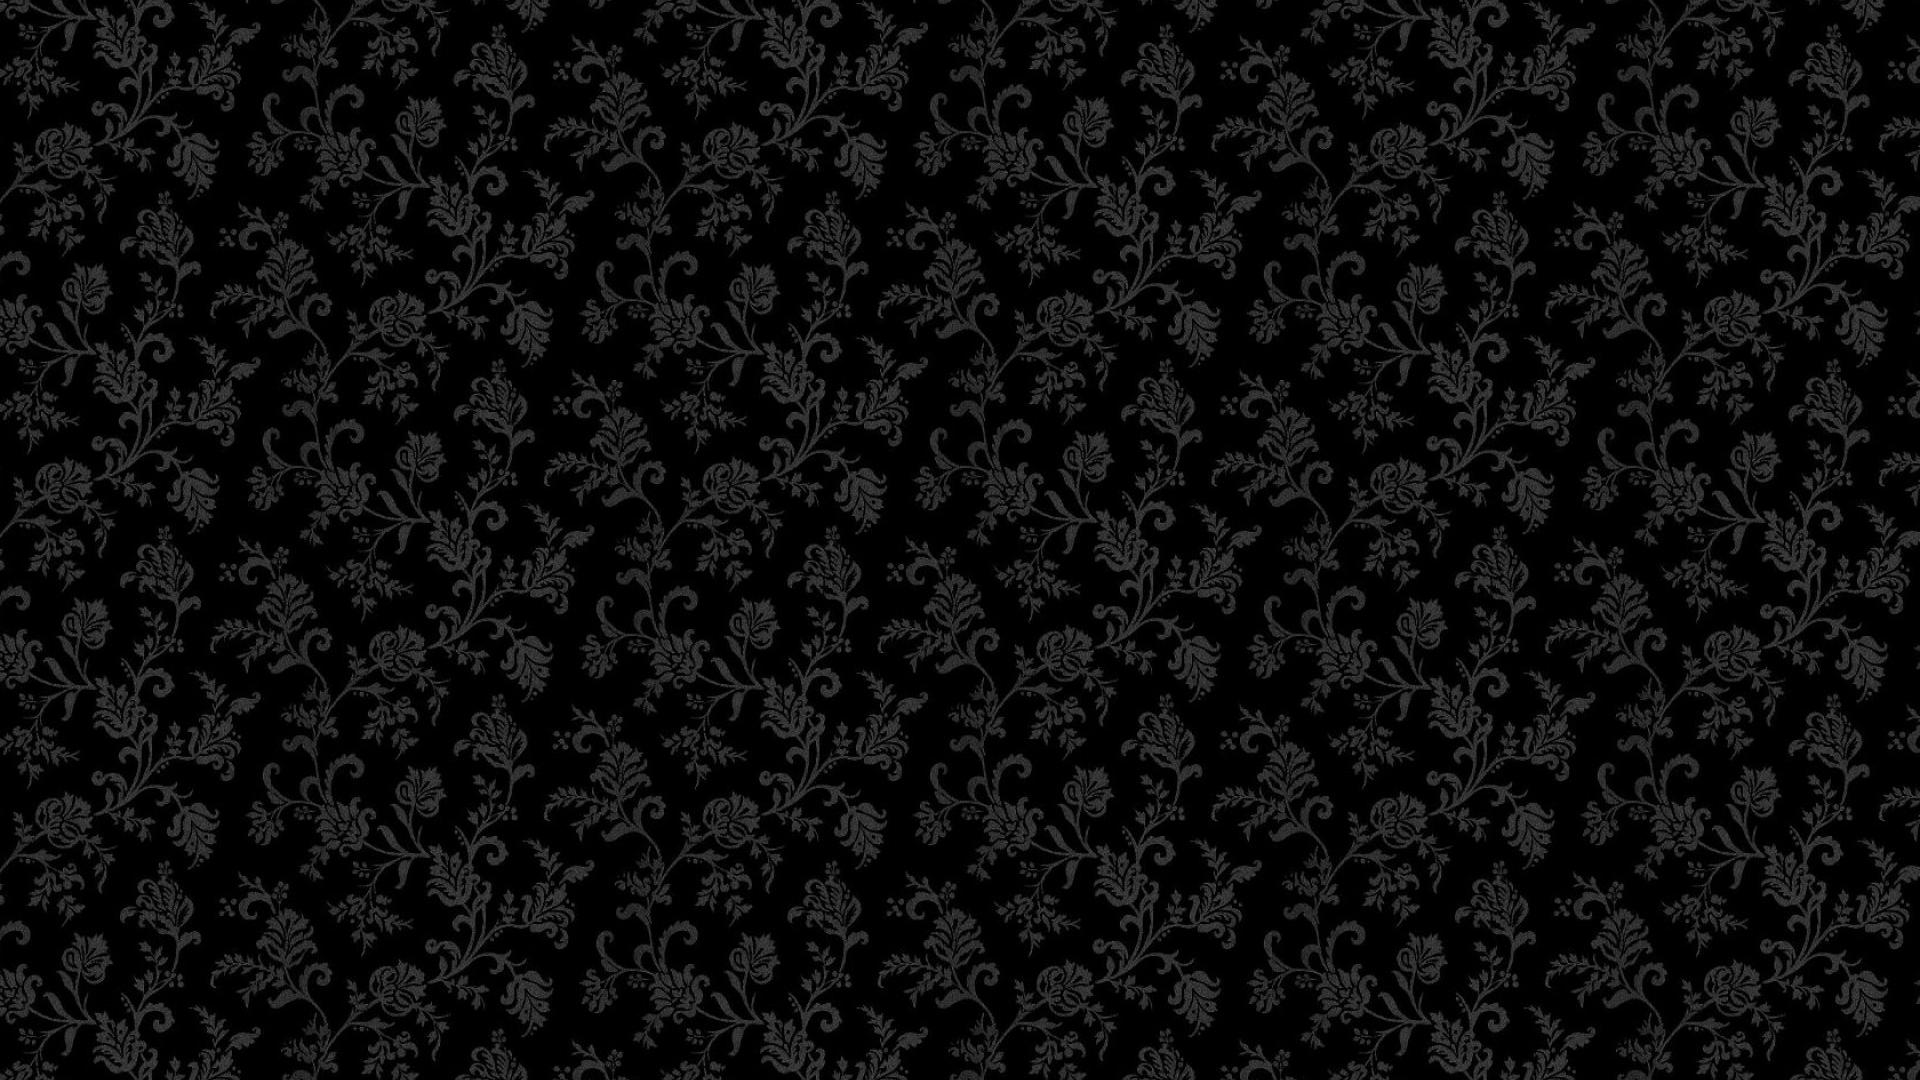 Black Pattern Wallpaper 22 Wallpapers Adorable Wallpapers